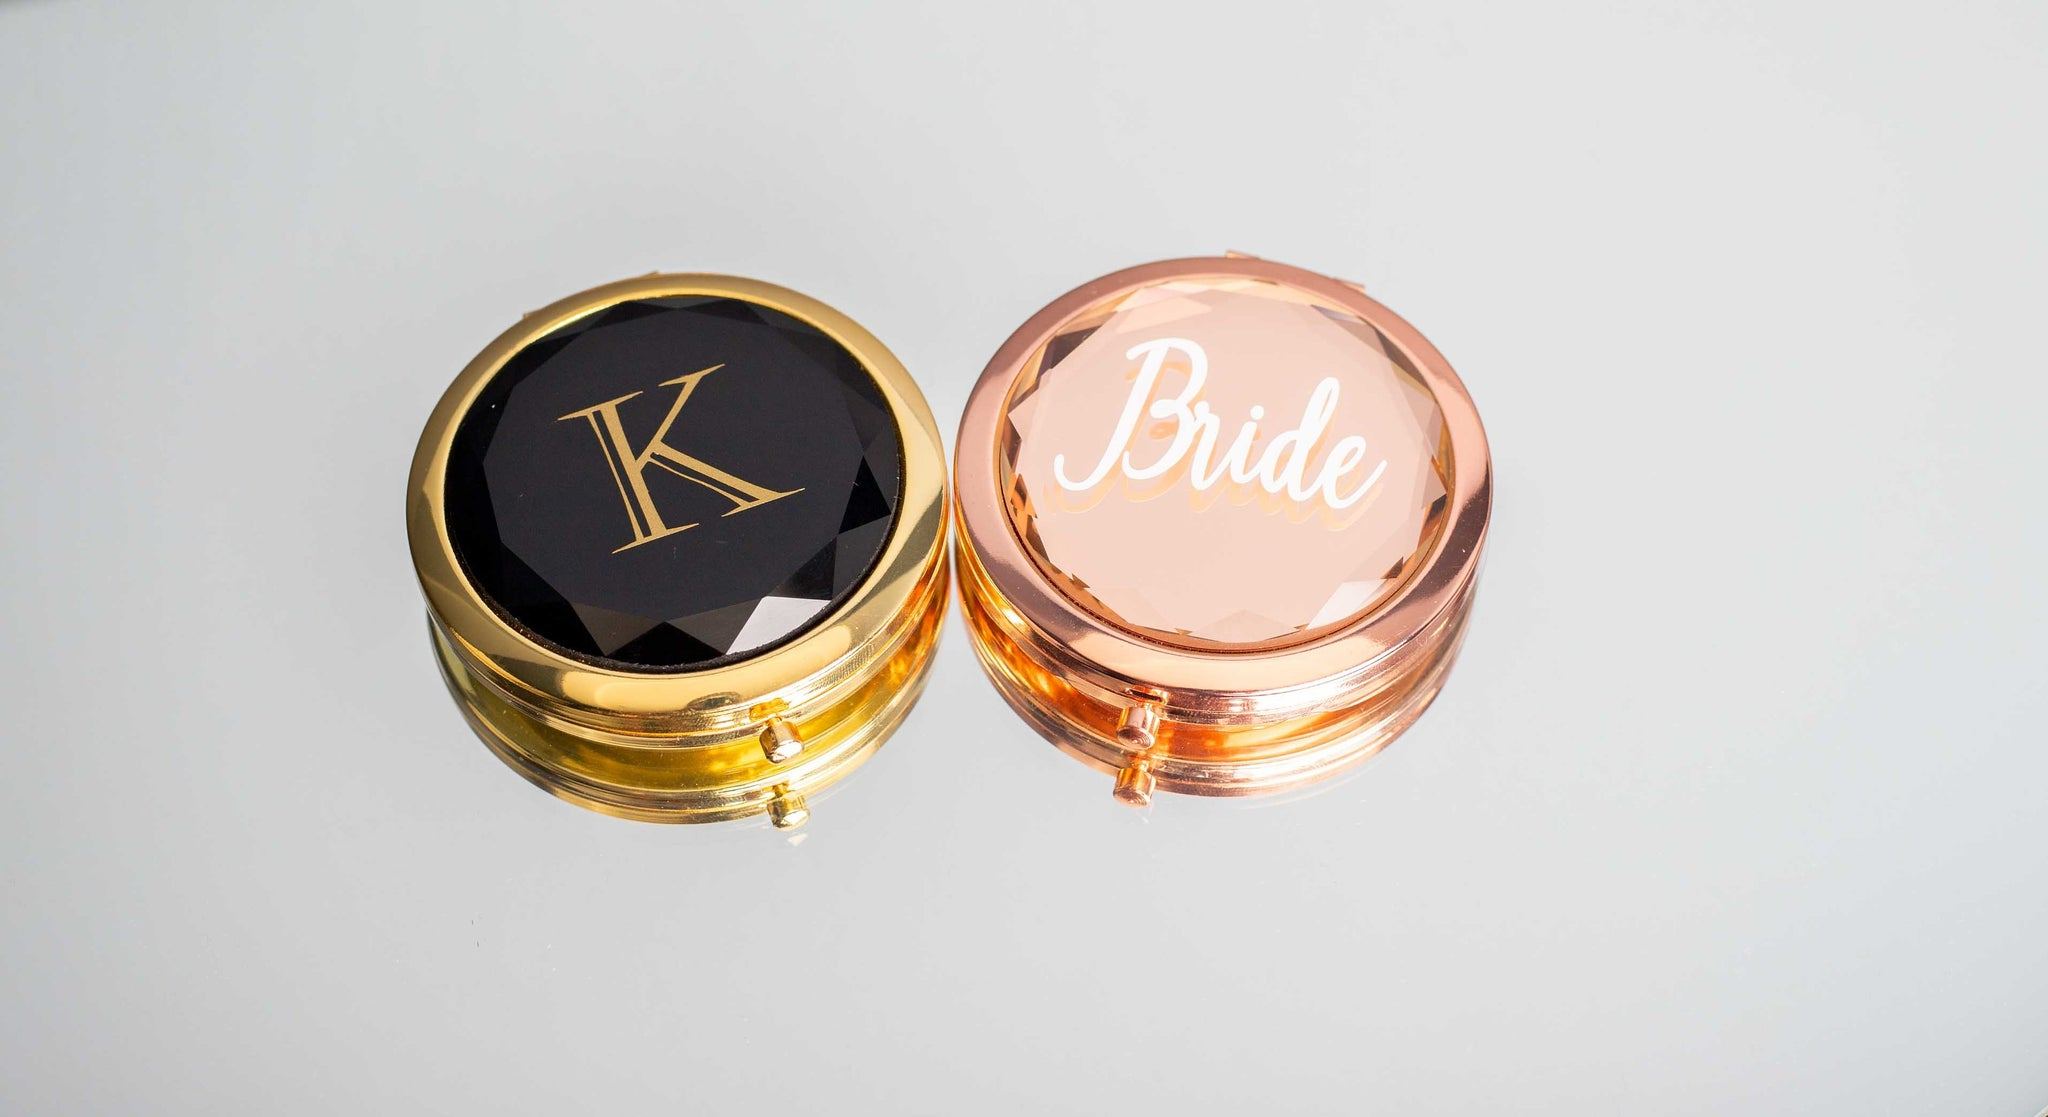 Personalized Jewel Top Compact Mirror For Your Bridesmaid Proposal Box